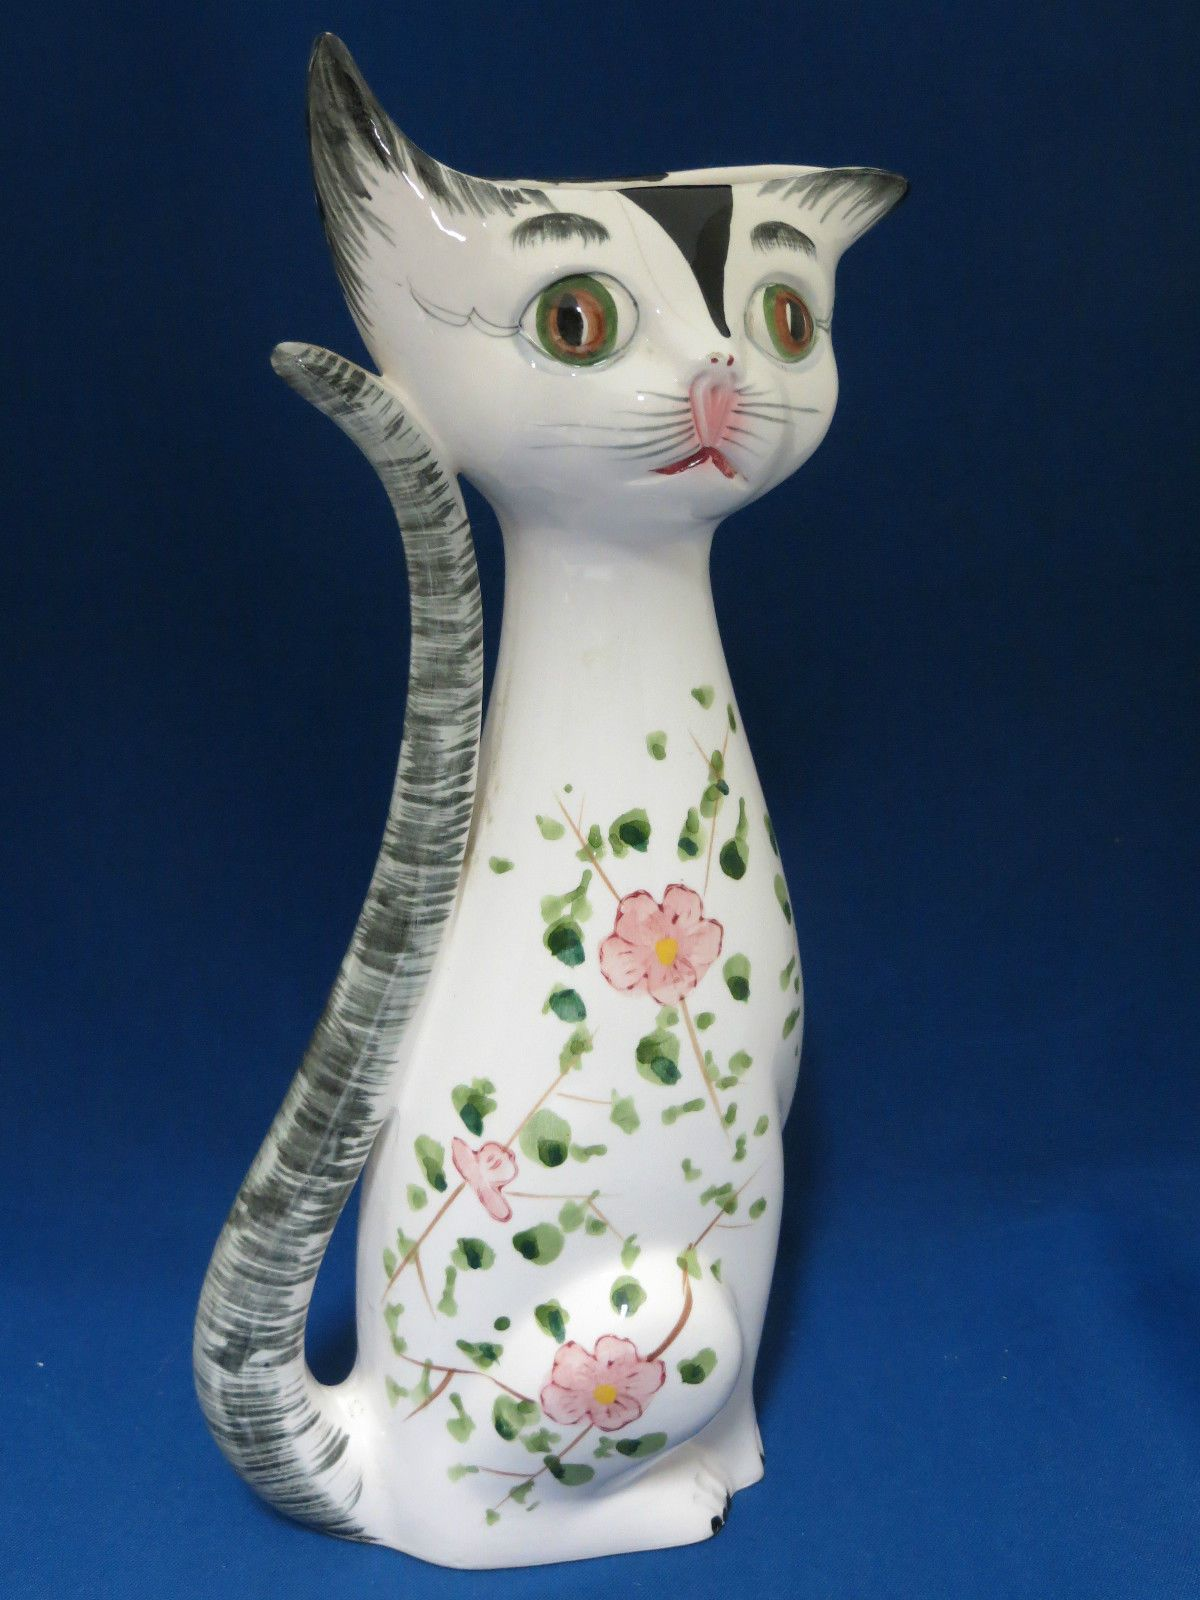 Tall cat shaped vase vintage 1950s hand painted flowers kitty tall cat shaped vase vintage 1950s hand painted flowers kitty hairline crack ebay reviewsmspy